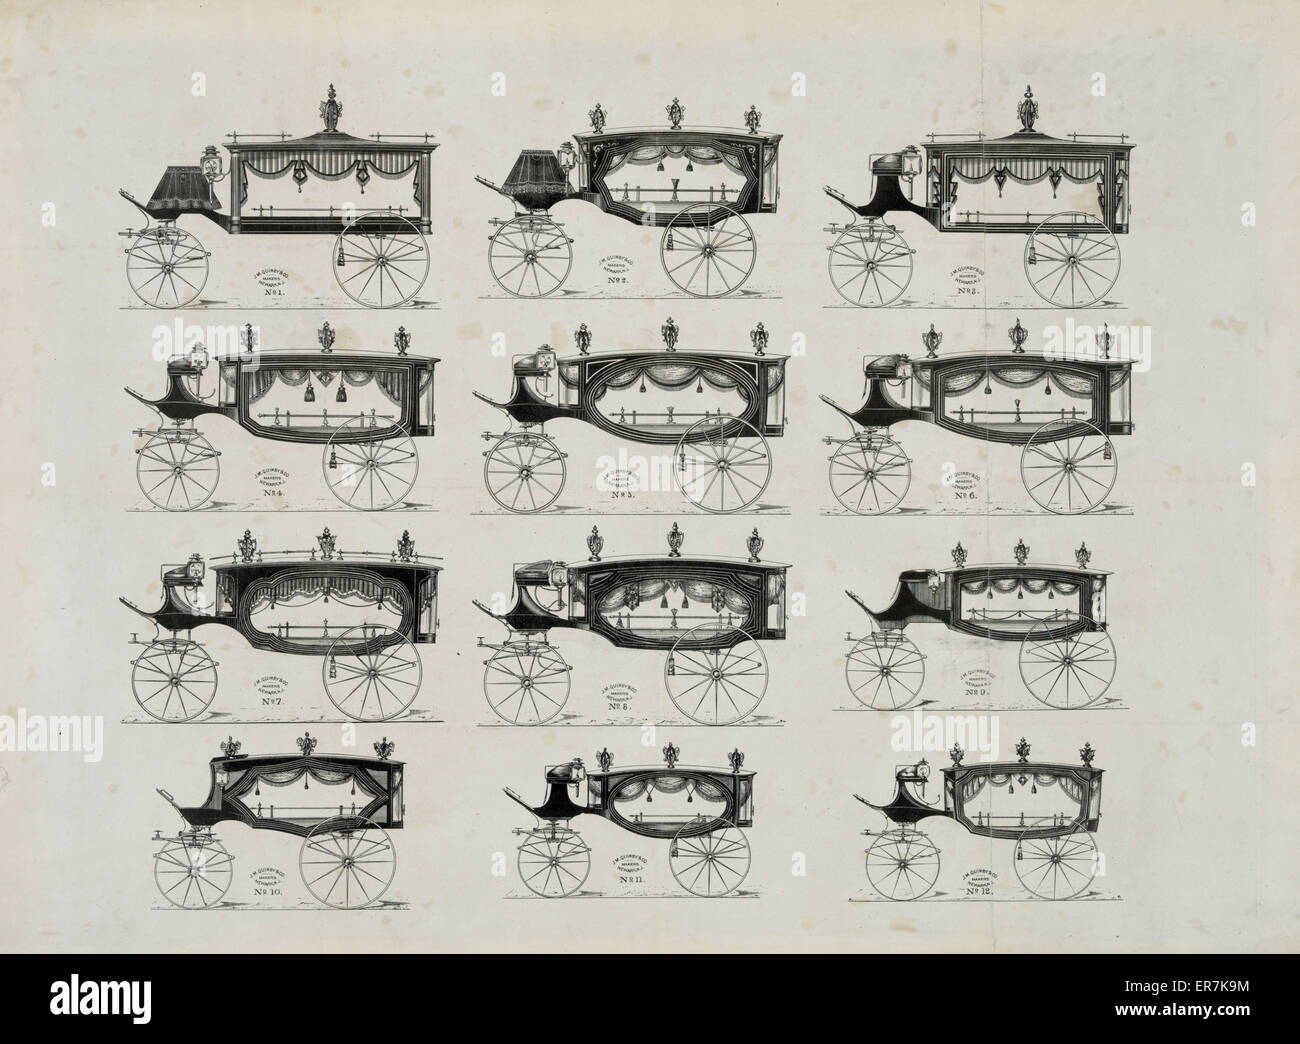 Funeral cars nos. 1-12. - Stock Image